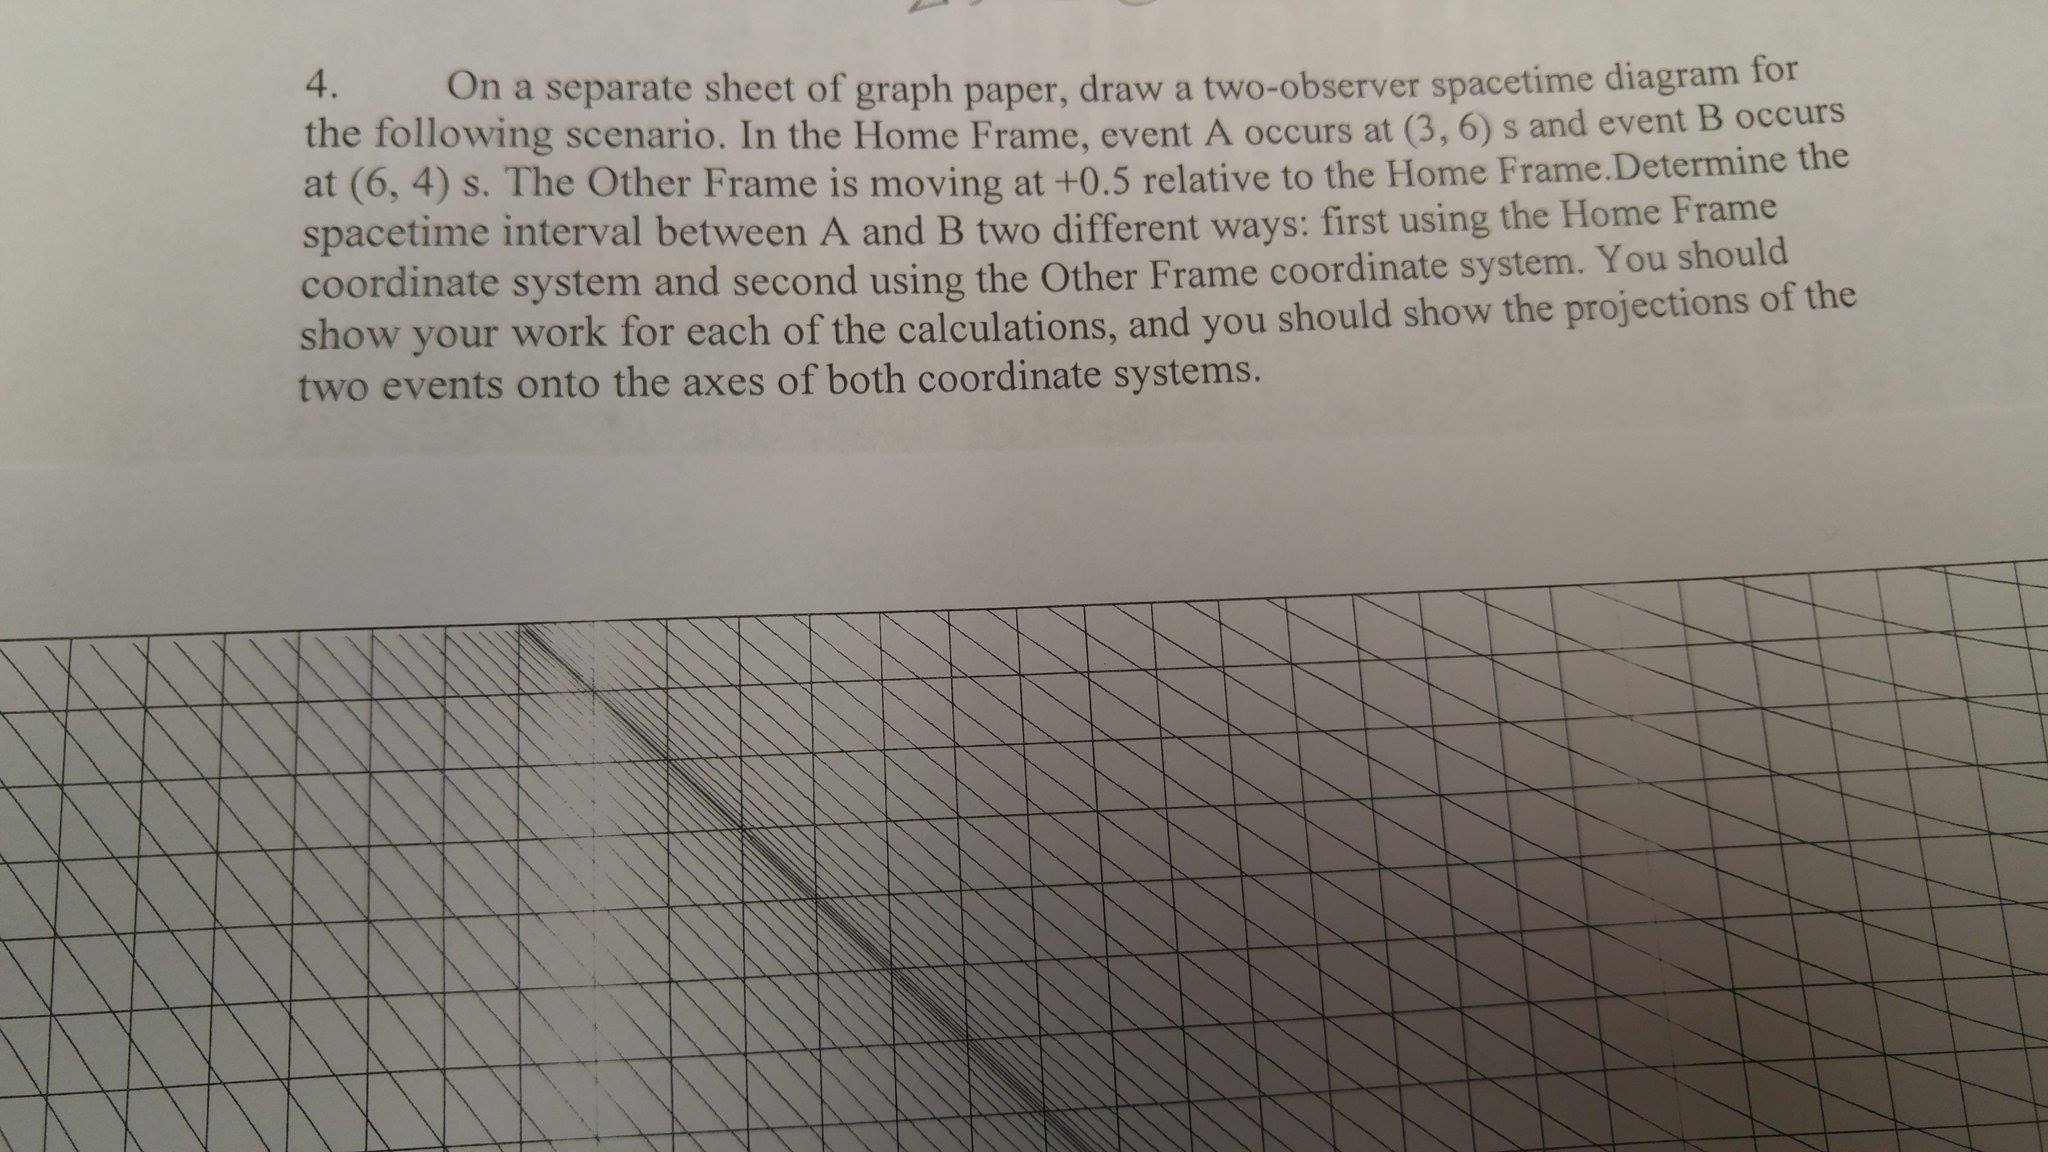 On a separate sheet of graph paper, draw a two-obs